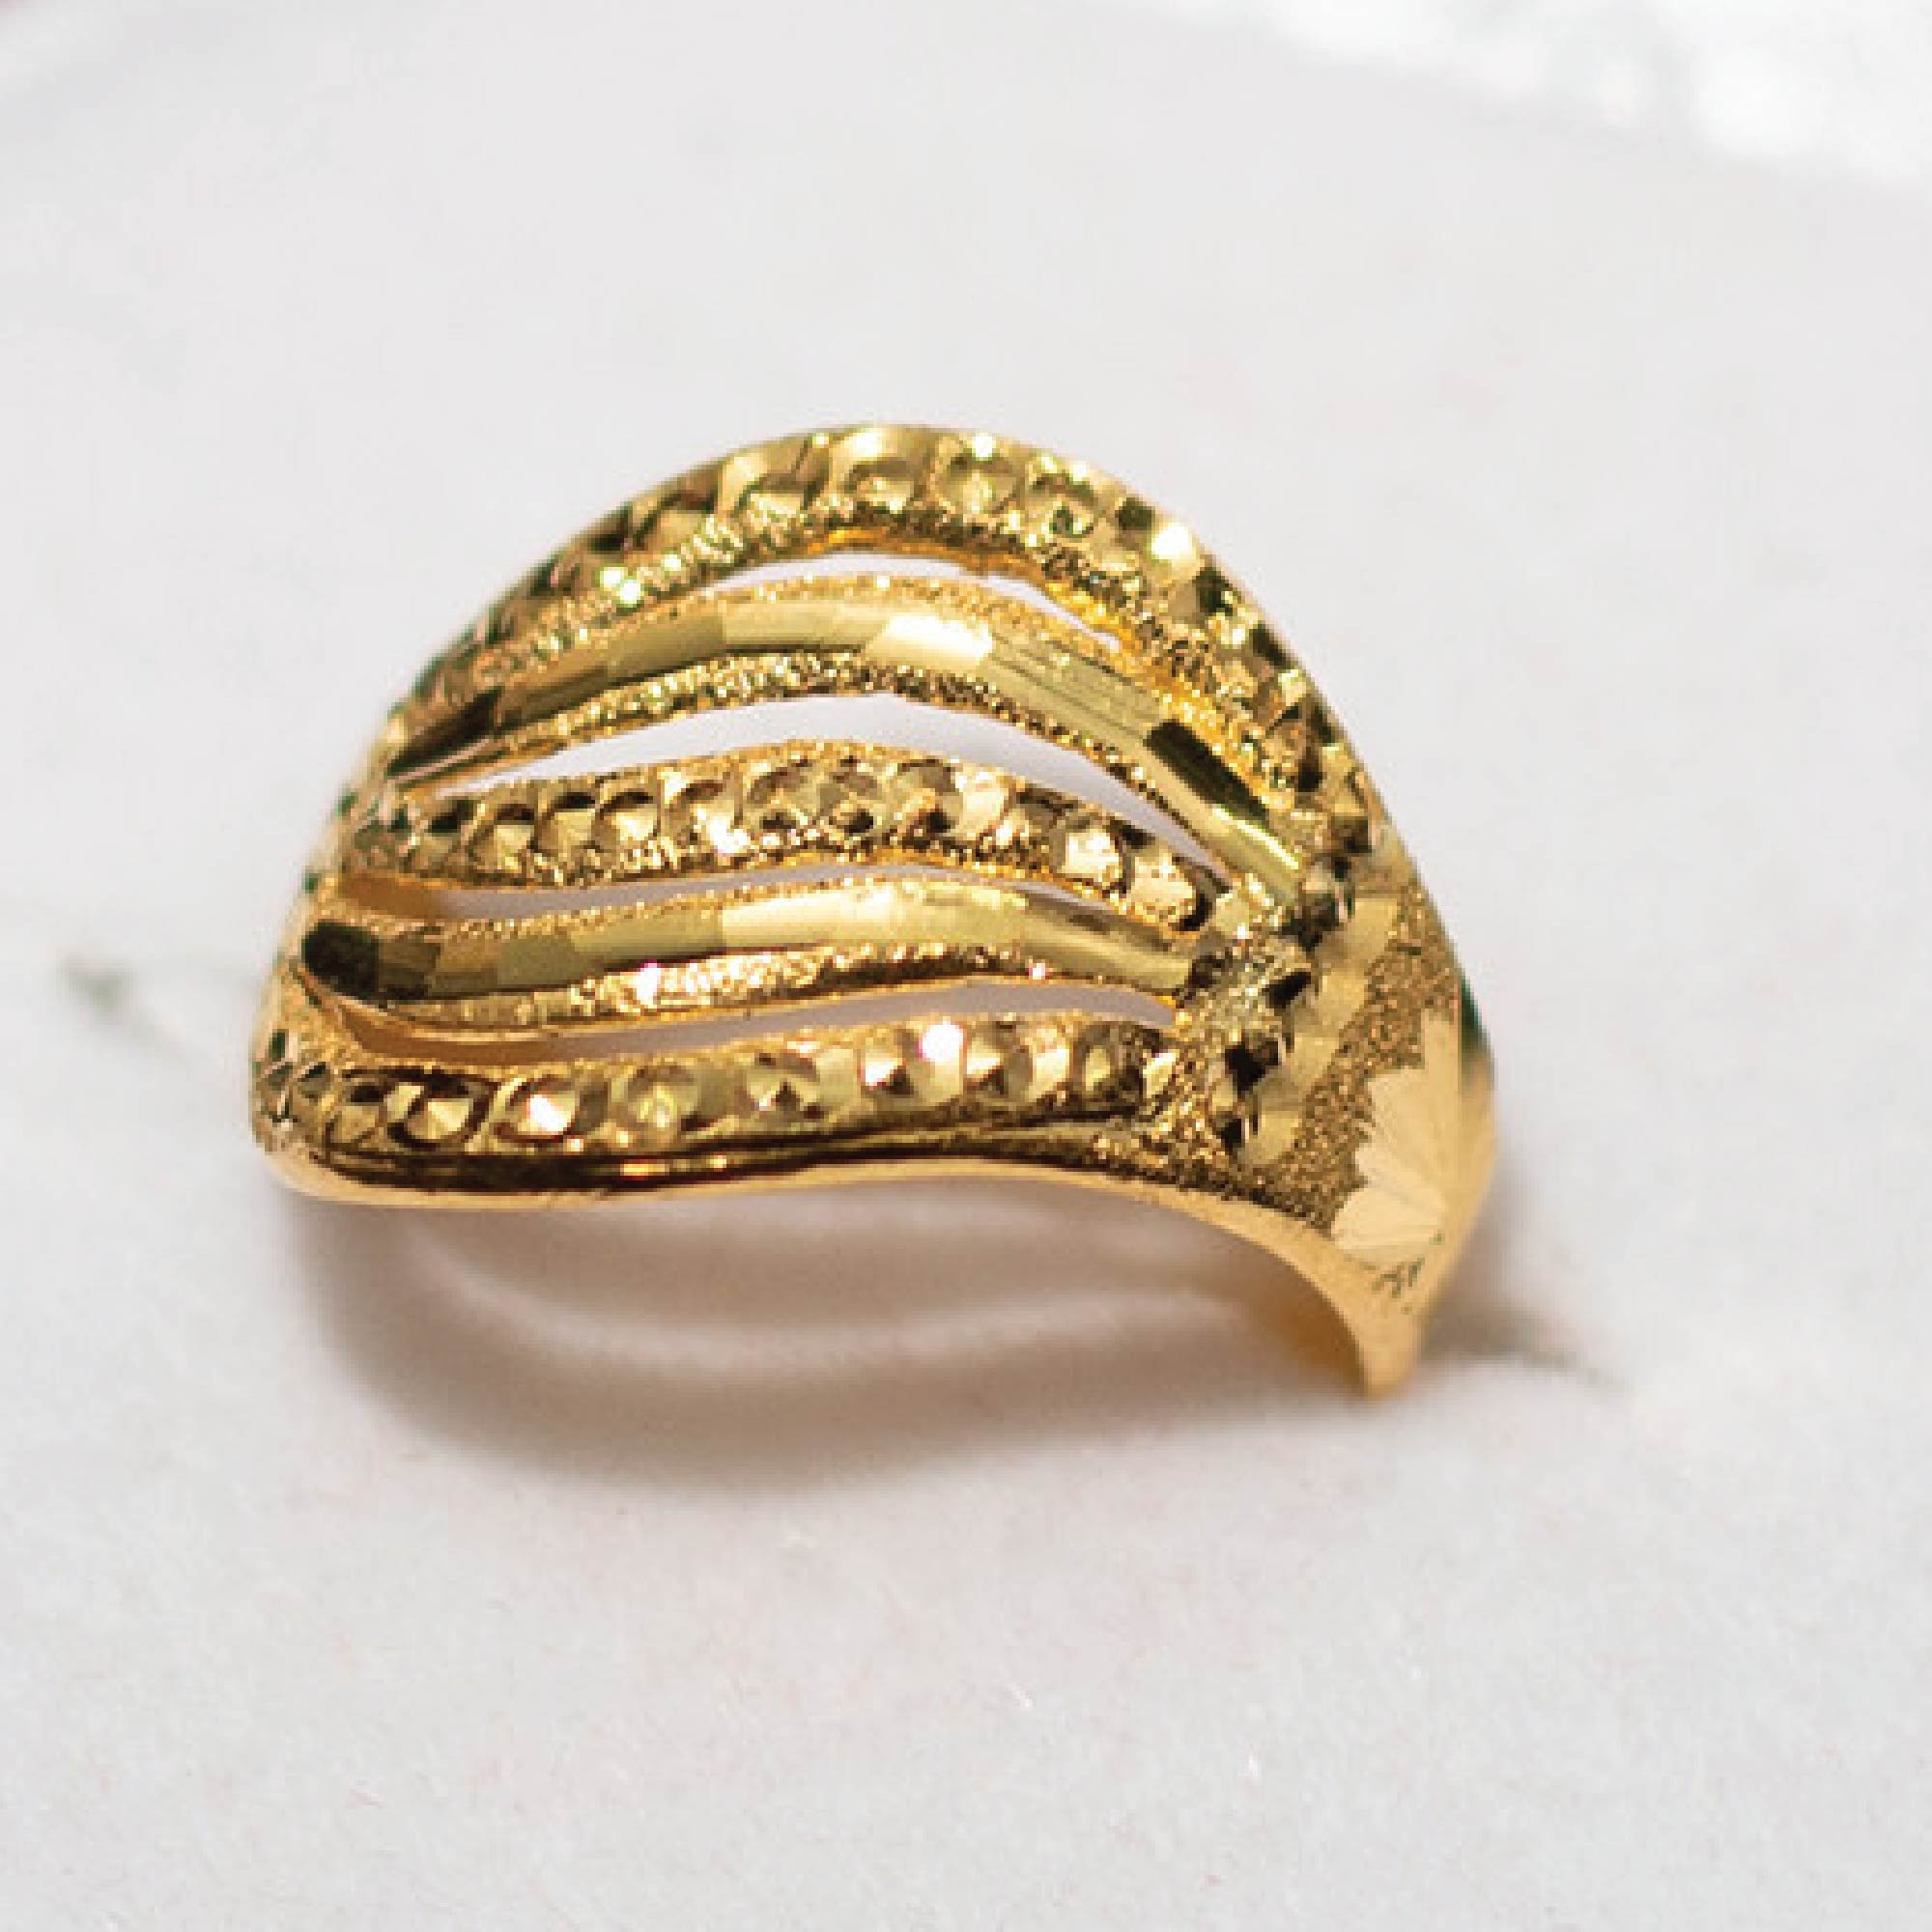 Regal Golden Ring